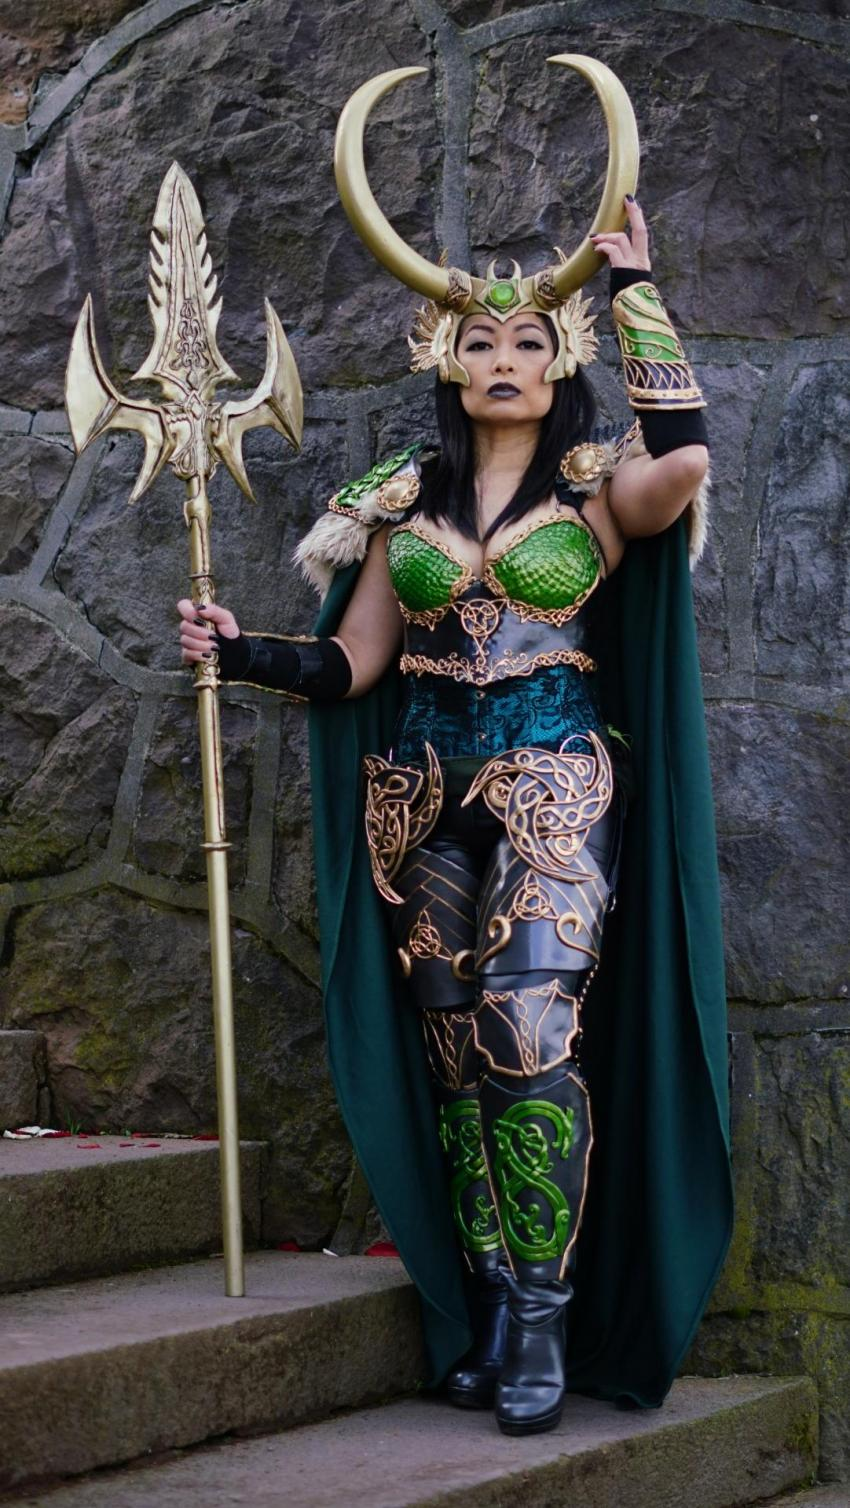 """Most Beautiful: """"Lady Loki in Armor"""", a striking original interpretation of the character in resplendent battle armor and impressive weapon too, designed and crafted by VivSai"""